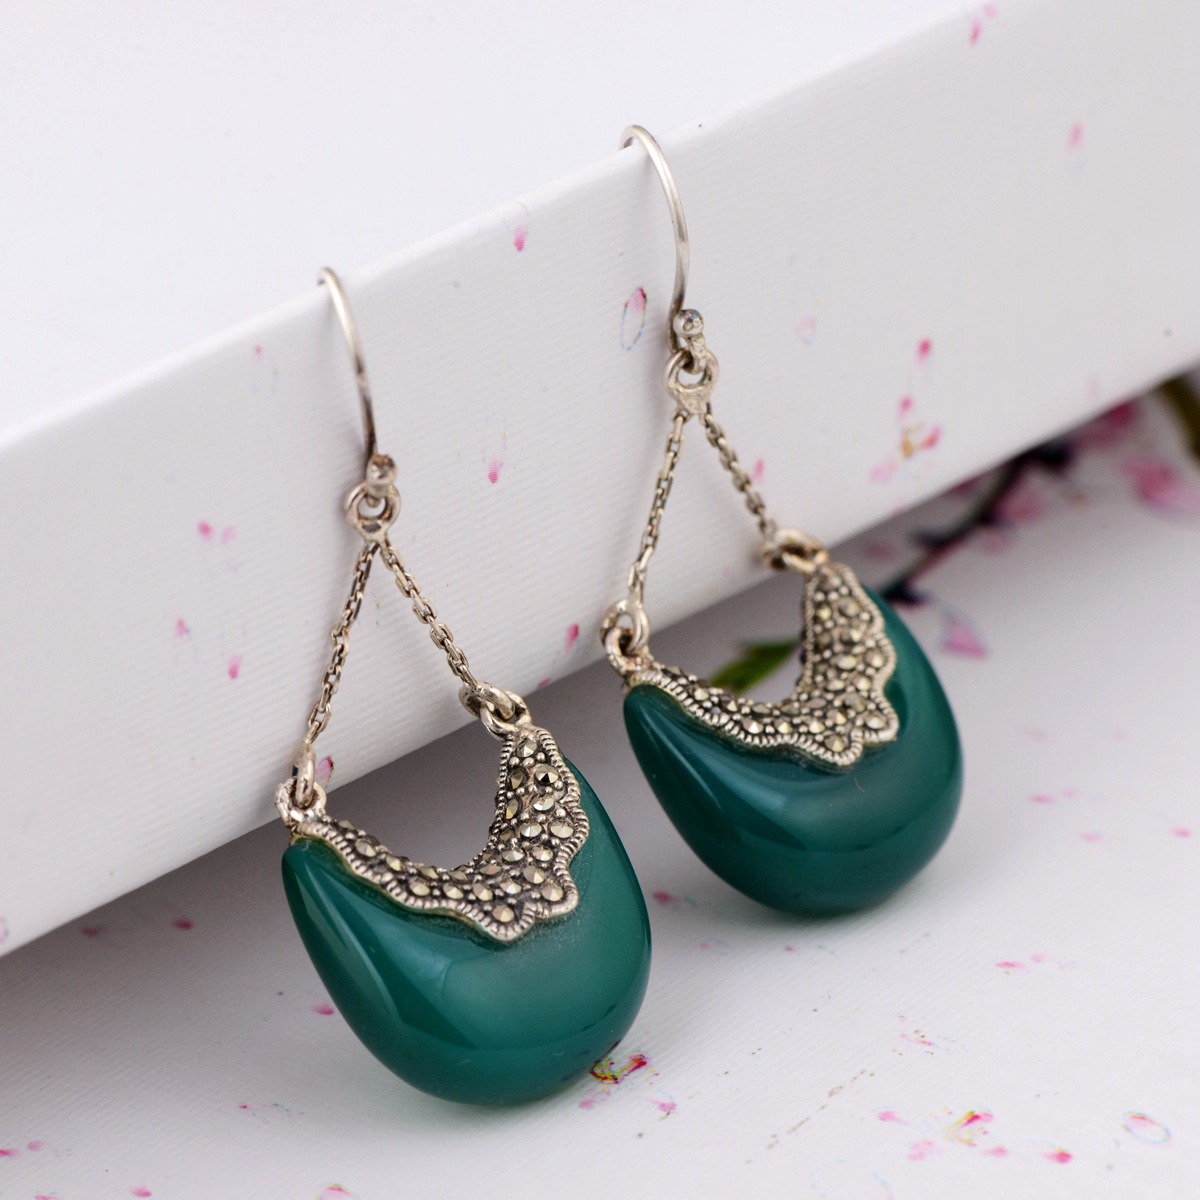 Silver Earrings Wholesale S925 Pure Silver Inlay Green Agate Earrings Antique Female Of Chalcedony Design New Products s925 pure silver personality female models new beeswax